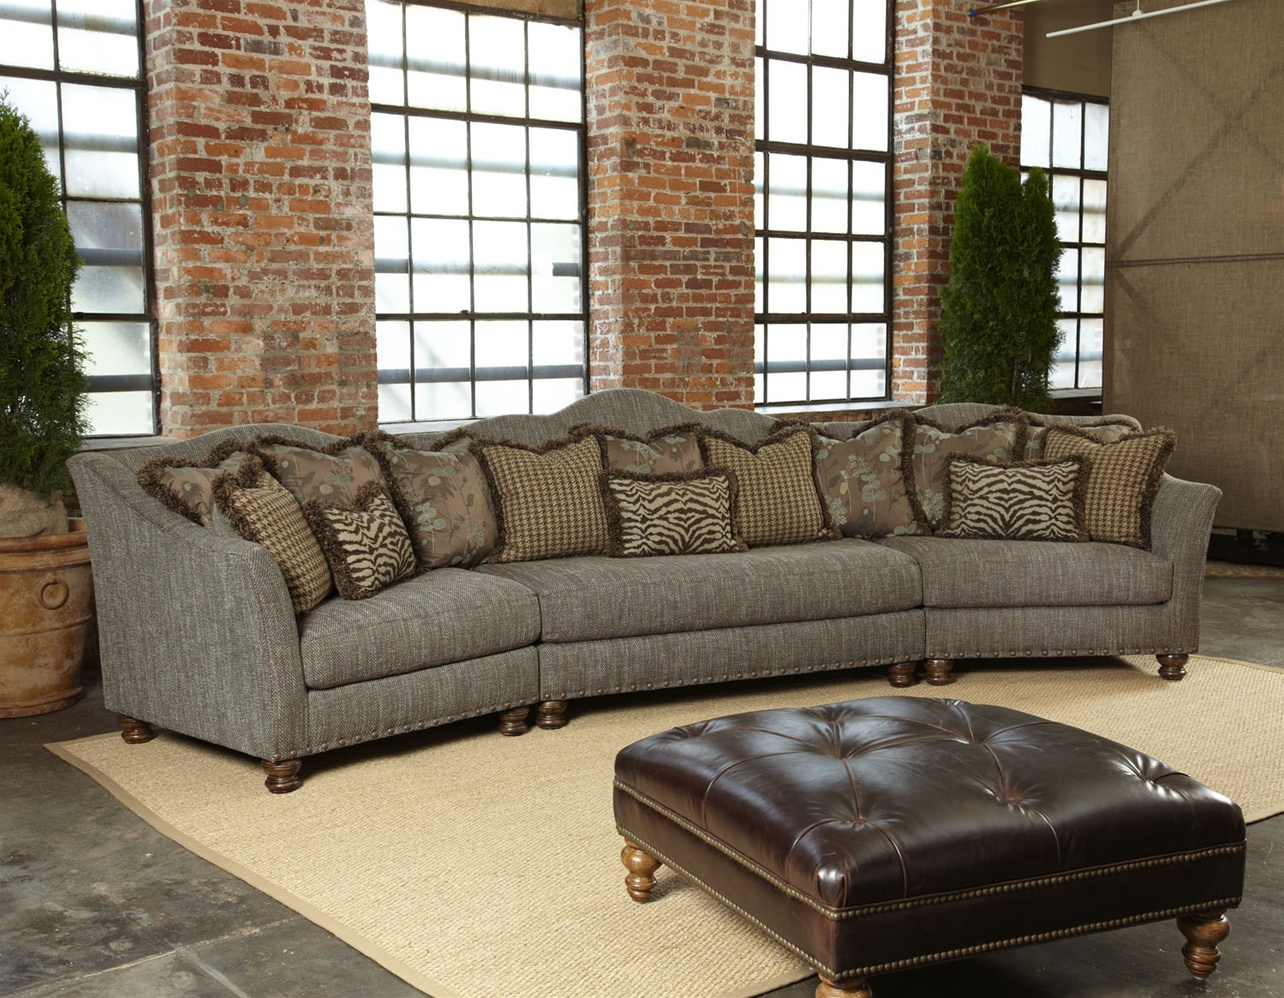 Compact high end furniture okvhysy